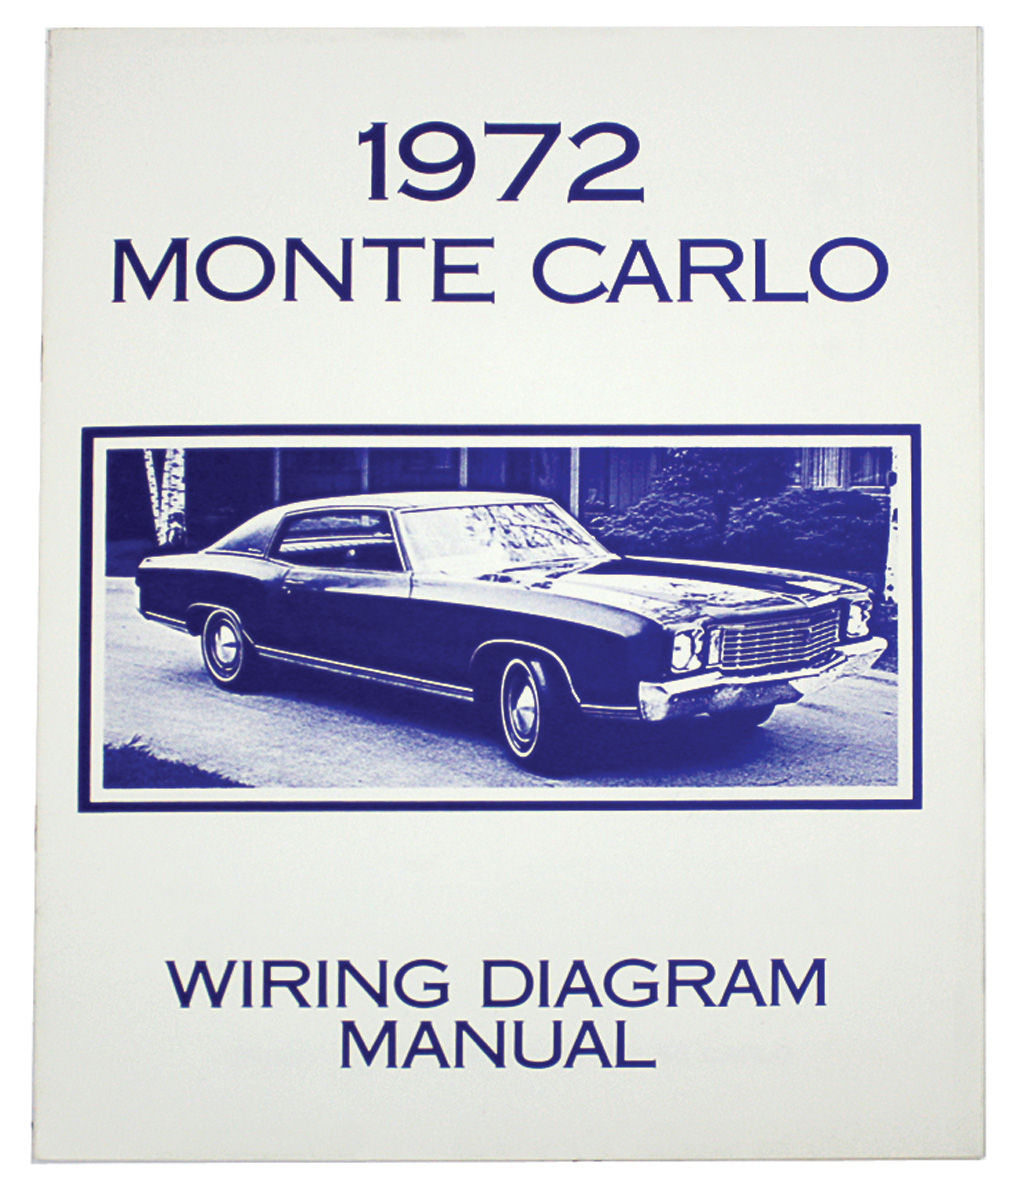 Monte Carlo Wiring Diagram Manuals Fits 1976 Monte Carlo